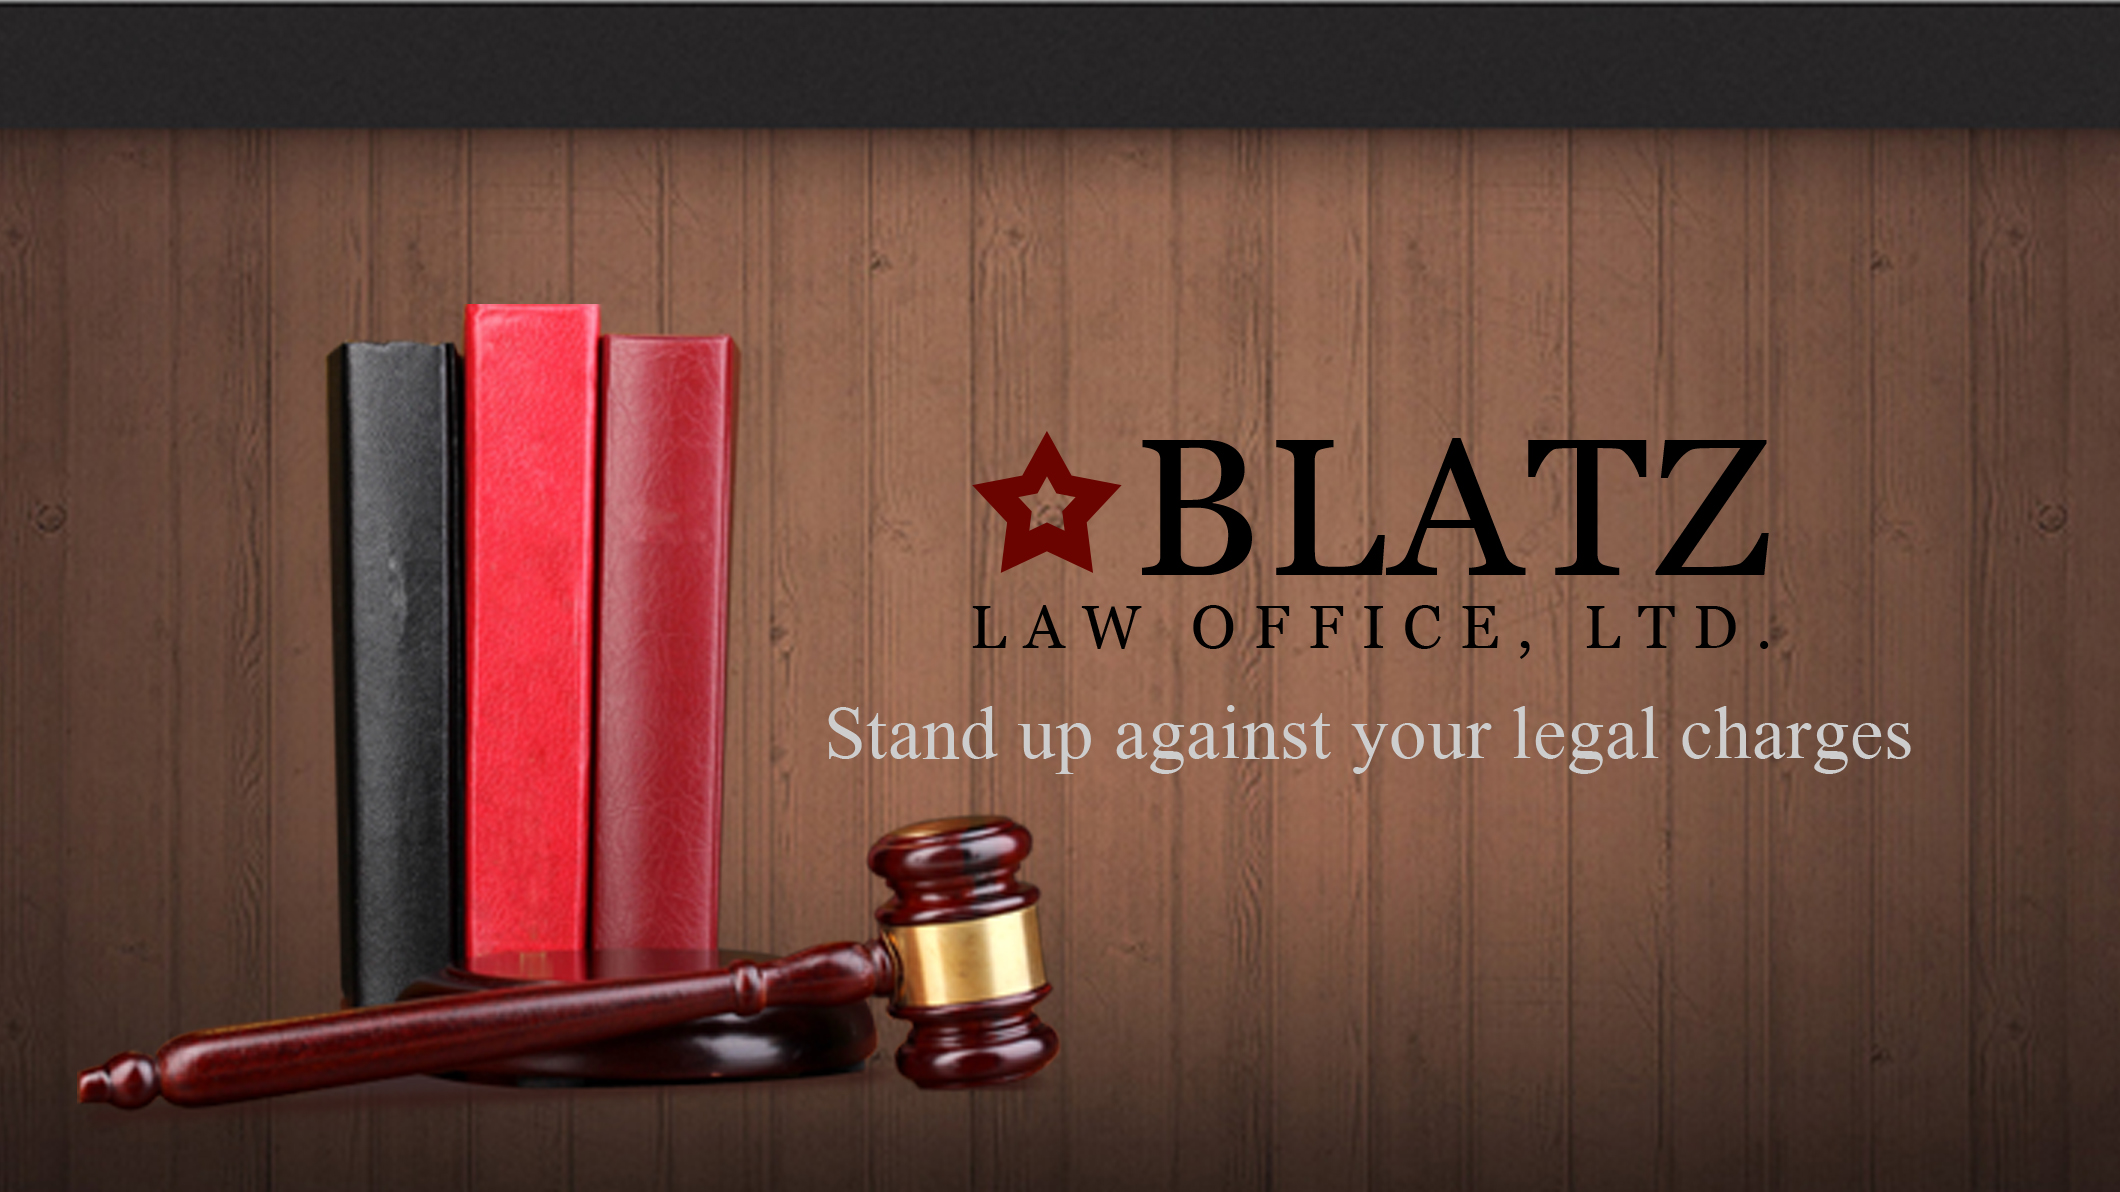 Blatz Law Office family lawyers Minnesota lawyers directory